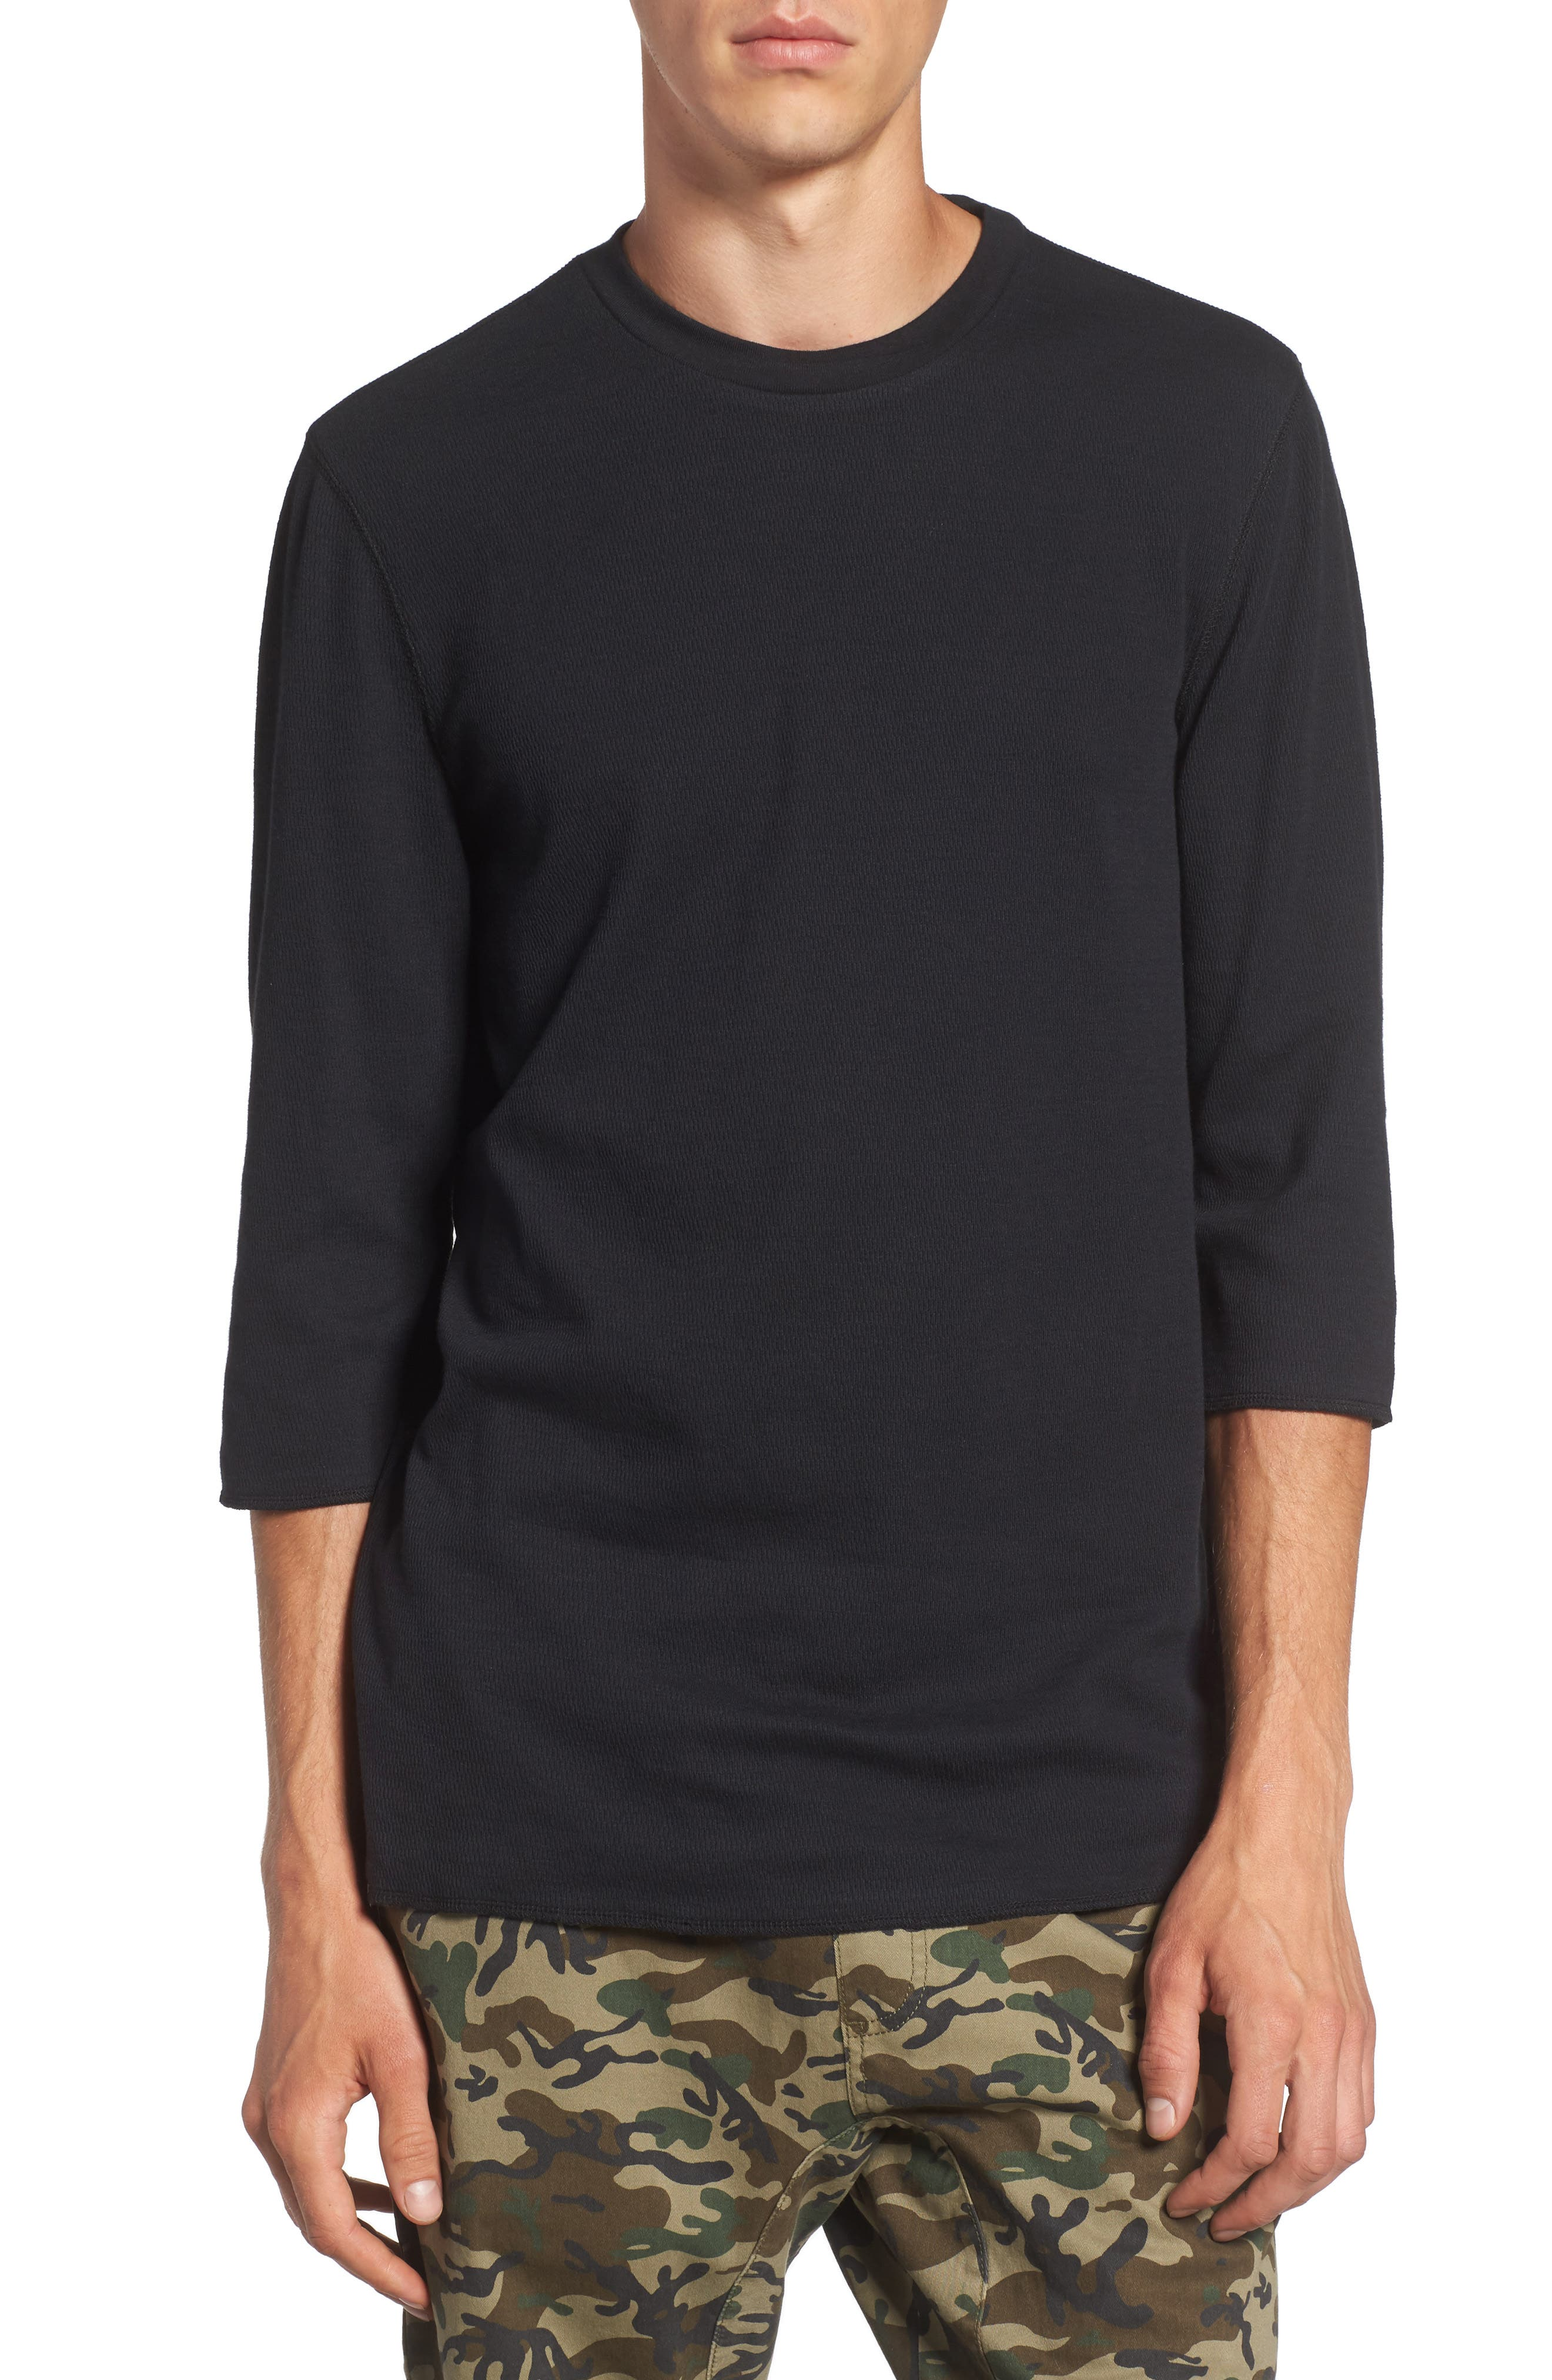 Alternate Image 1 Selected - The Rail Three-Quarter-Sleeve Thermal T-Shirt